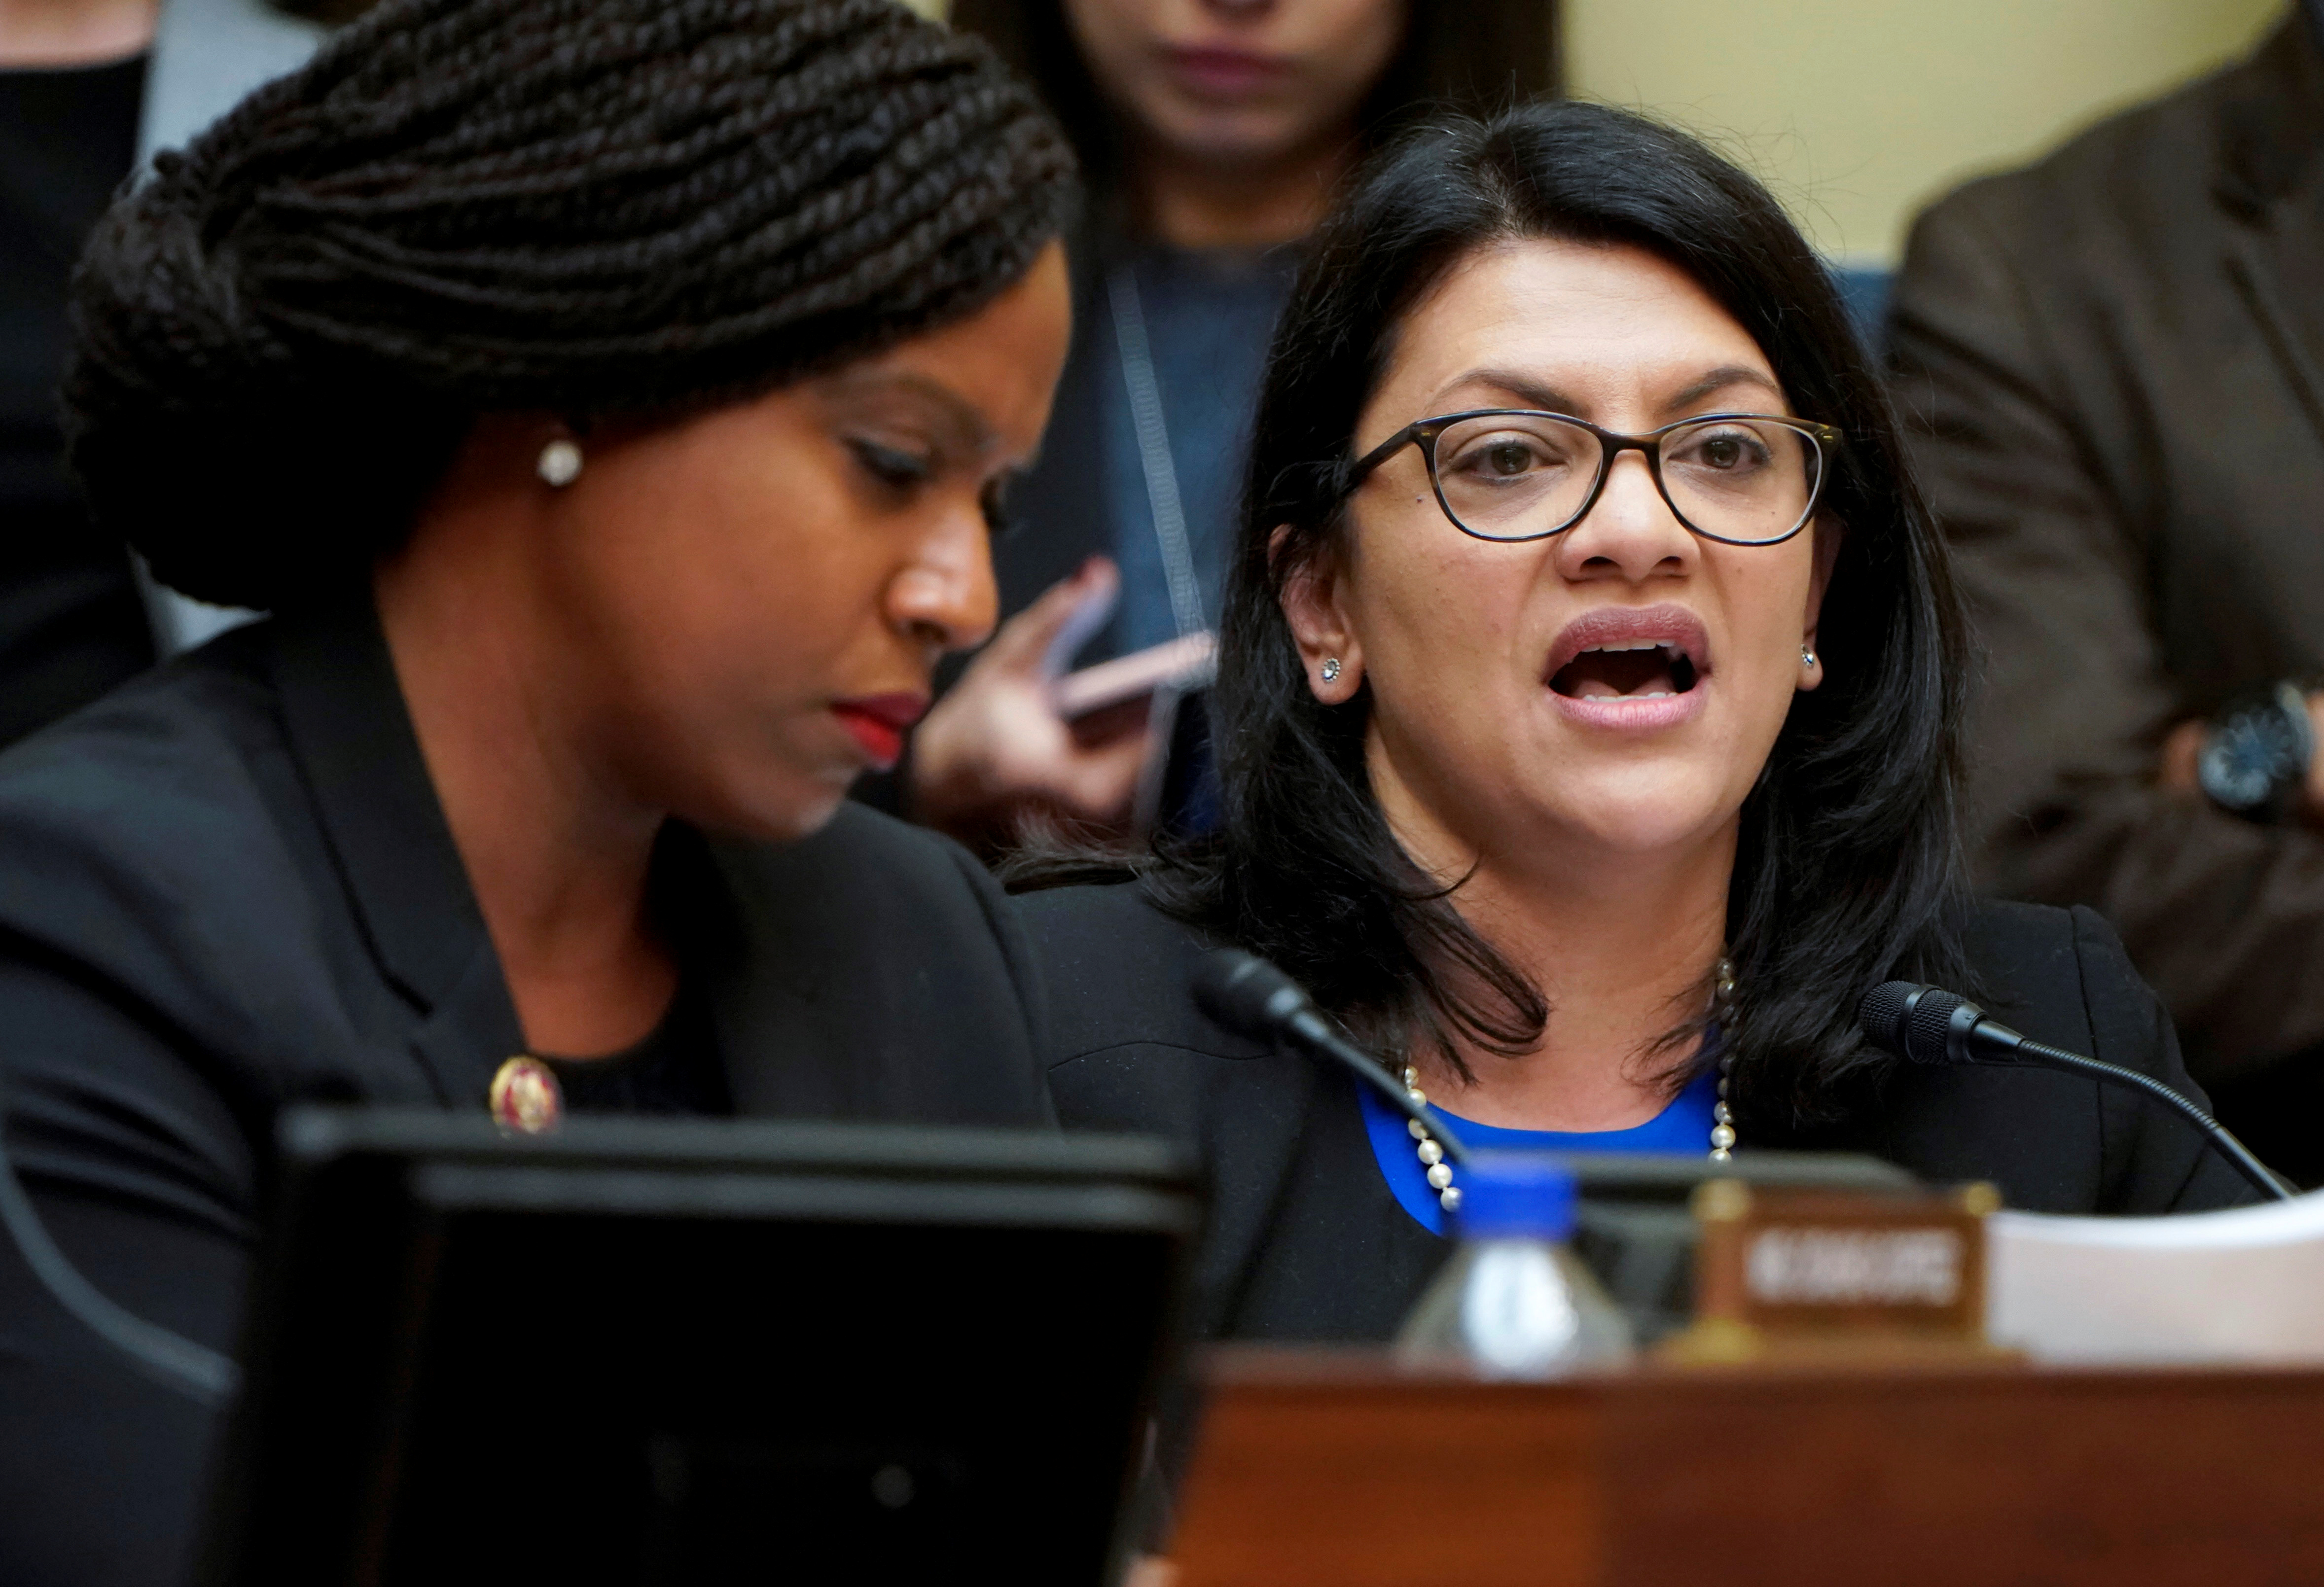 U.S. Rep. Rashida Tlaib questions Cohen during House Oversight hearing on Capitol Hill in Washington